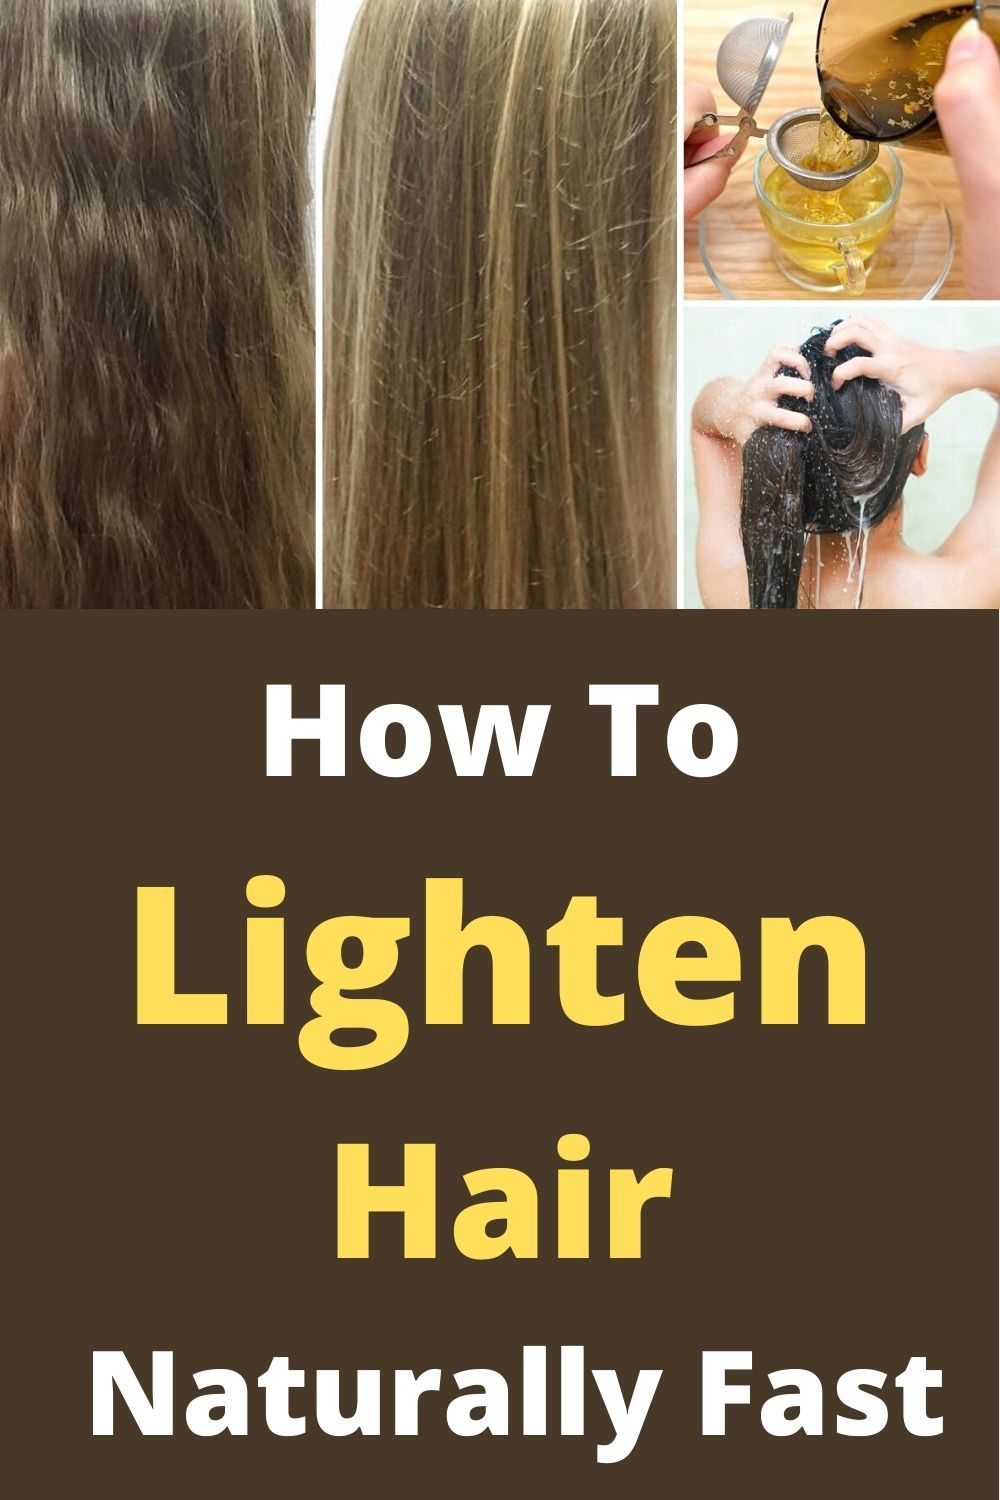 How To Lighten Hair Naturally 5 Tips For Lighter Hair In 2020 How To Lighten Hair Lighten Hair Naturally Lighter Hair